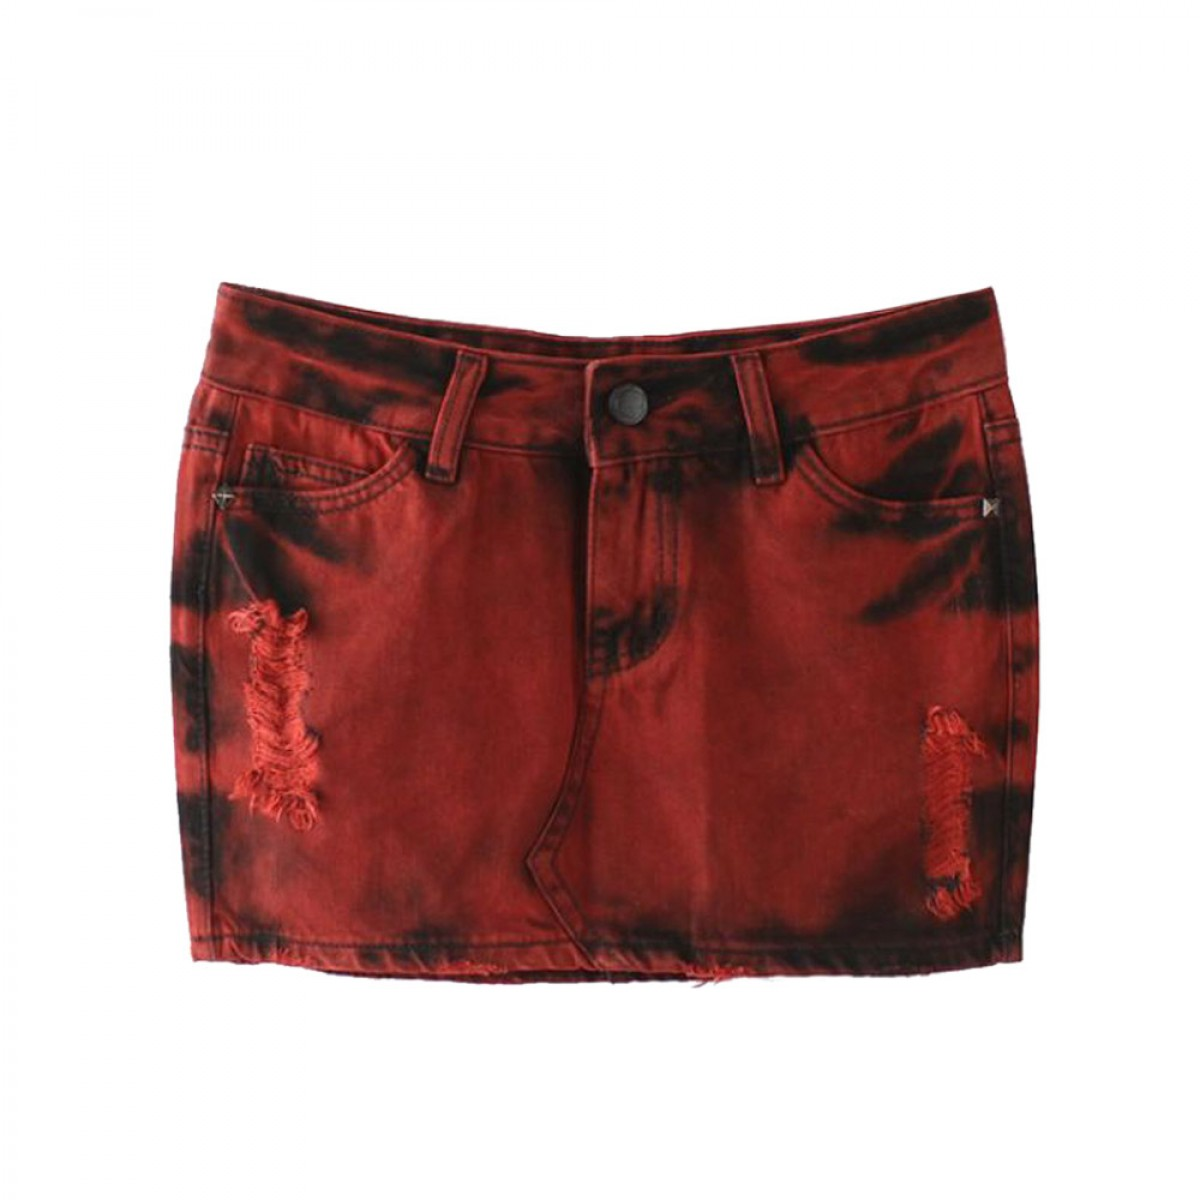 Punk Skirt Red Denim Skirt Studs Sizes S-L| LATICCI